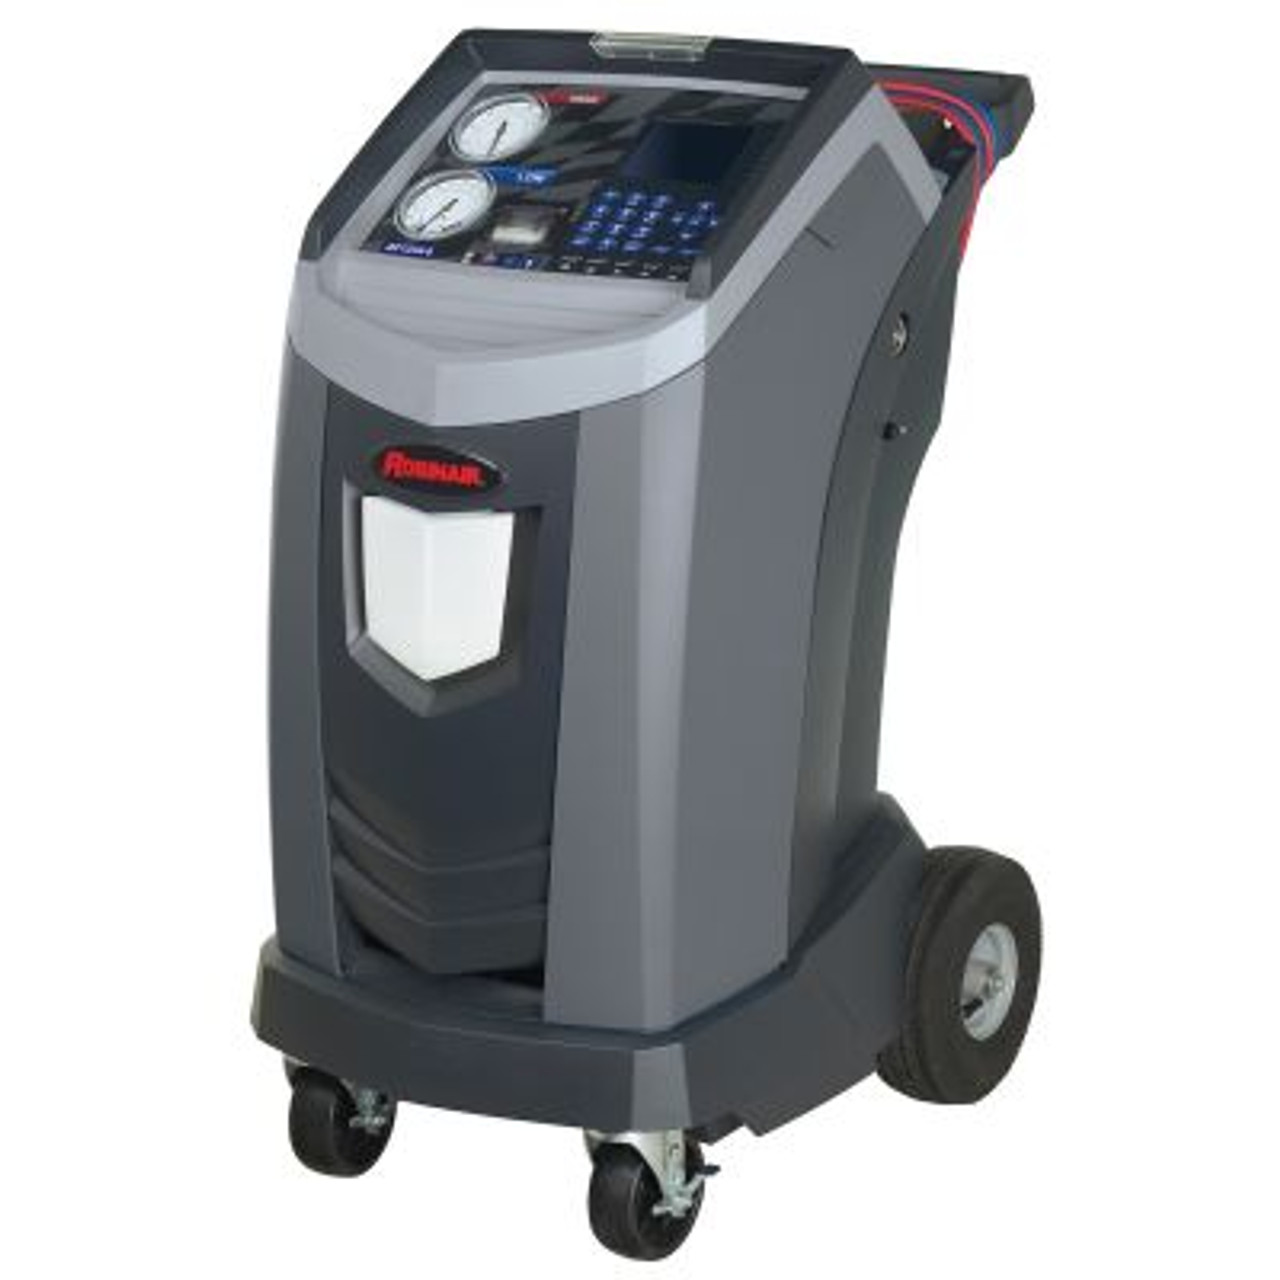 Robinair 1234yf ACS Recover, Recycle and Recharge Machine: AC1234-6